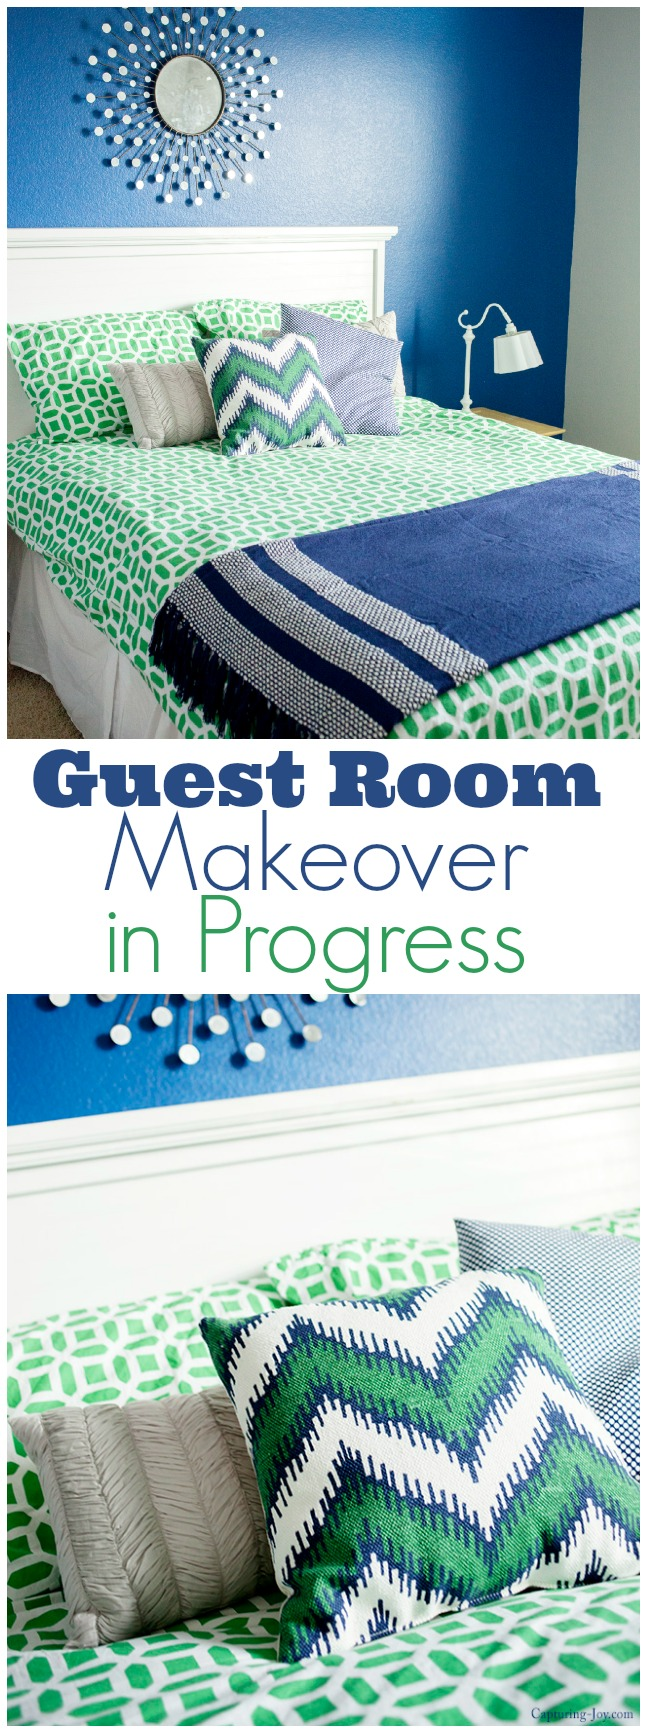 Guest-Room-Makeover-in-Progress-with-Sherwin-Williams-Navy-and-Pottery-Barn-bedding